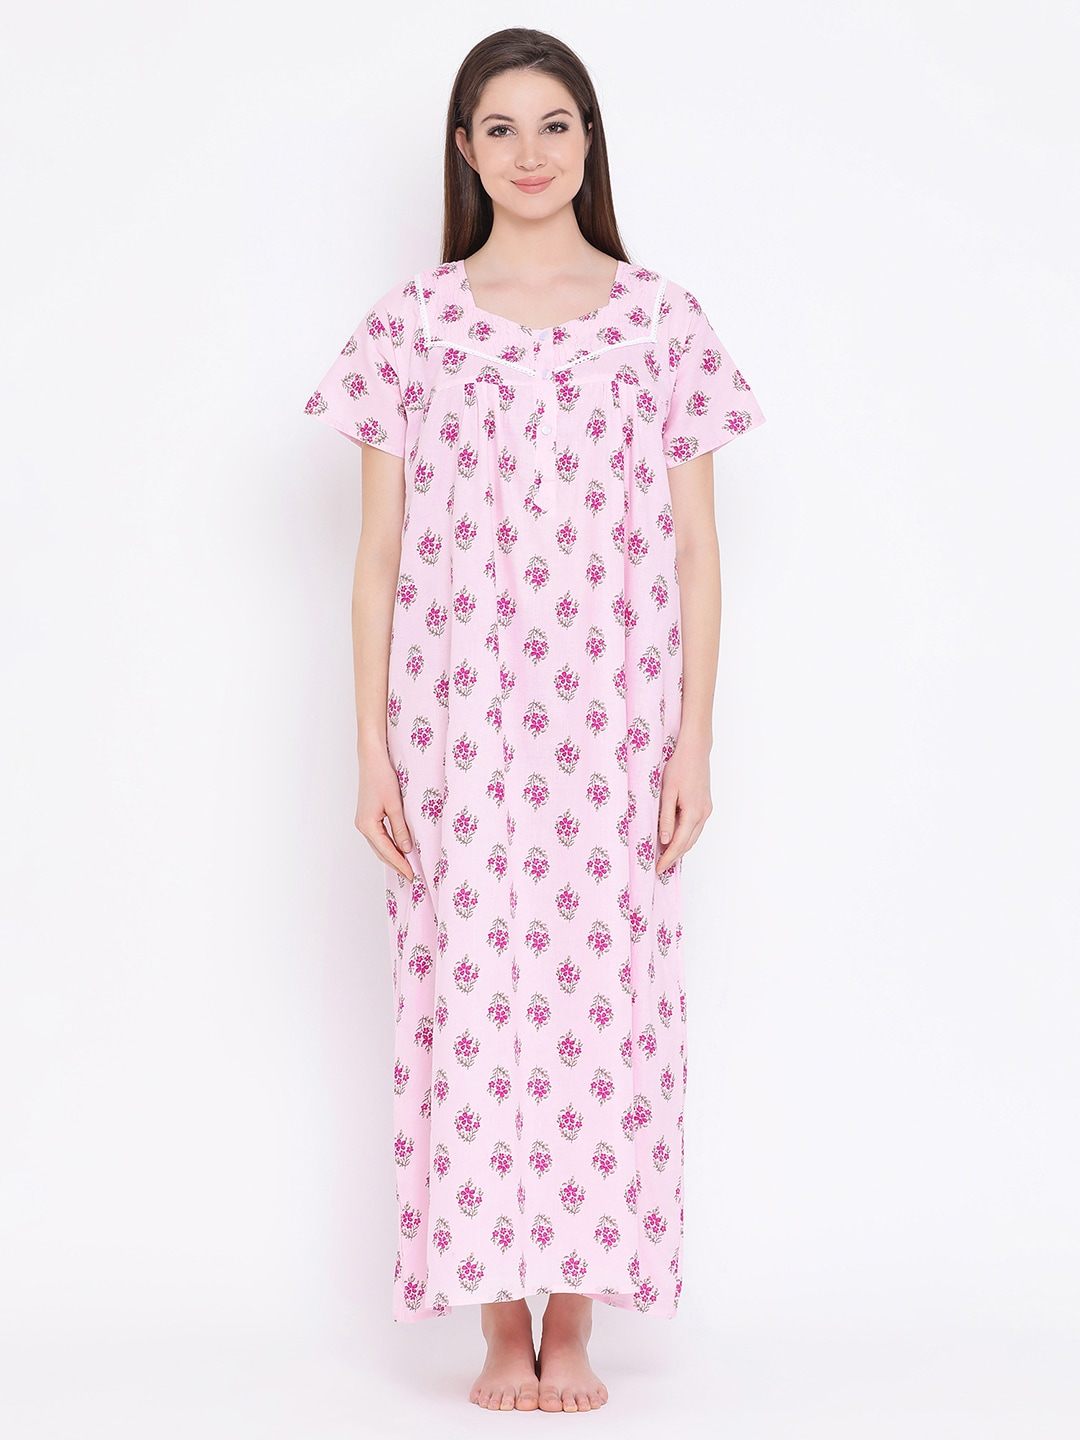 Cotton Nightdresses - Buy Cotton Nightdresses Online in India  cc949e7e8